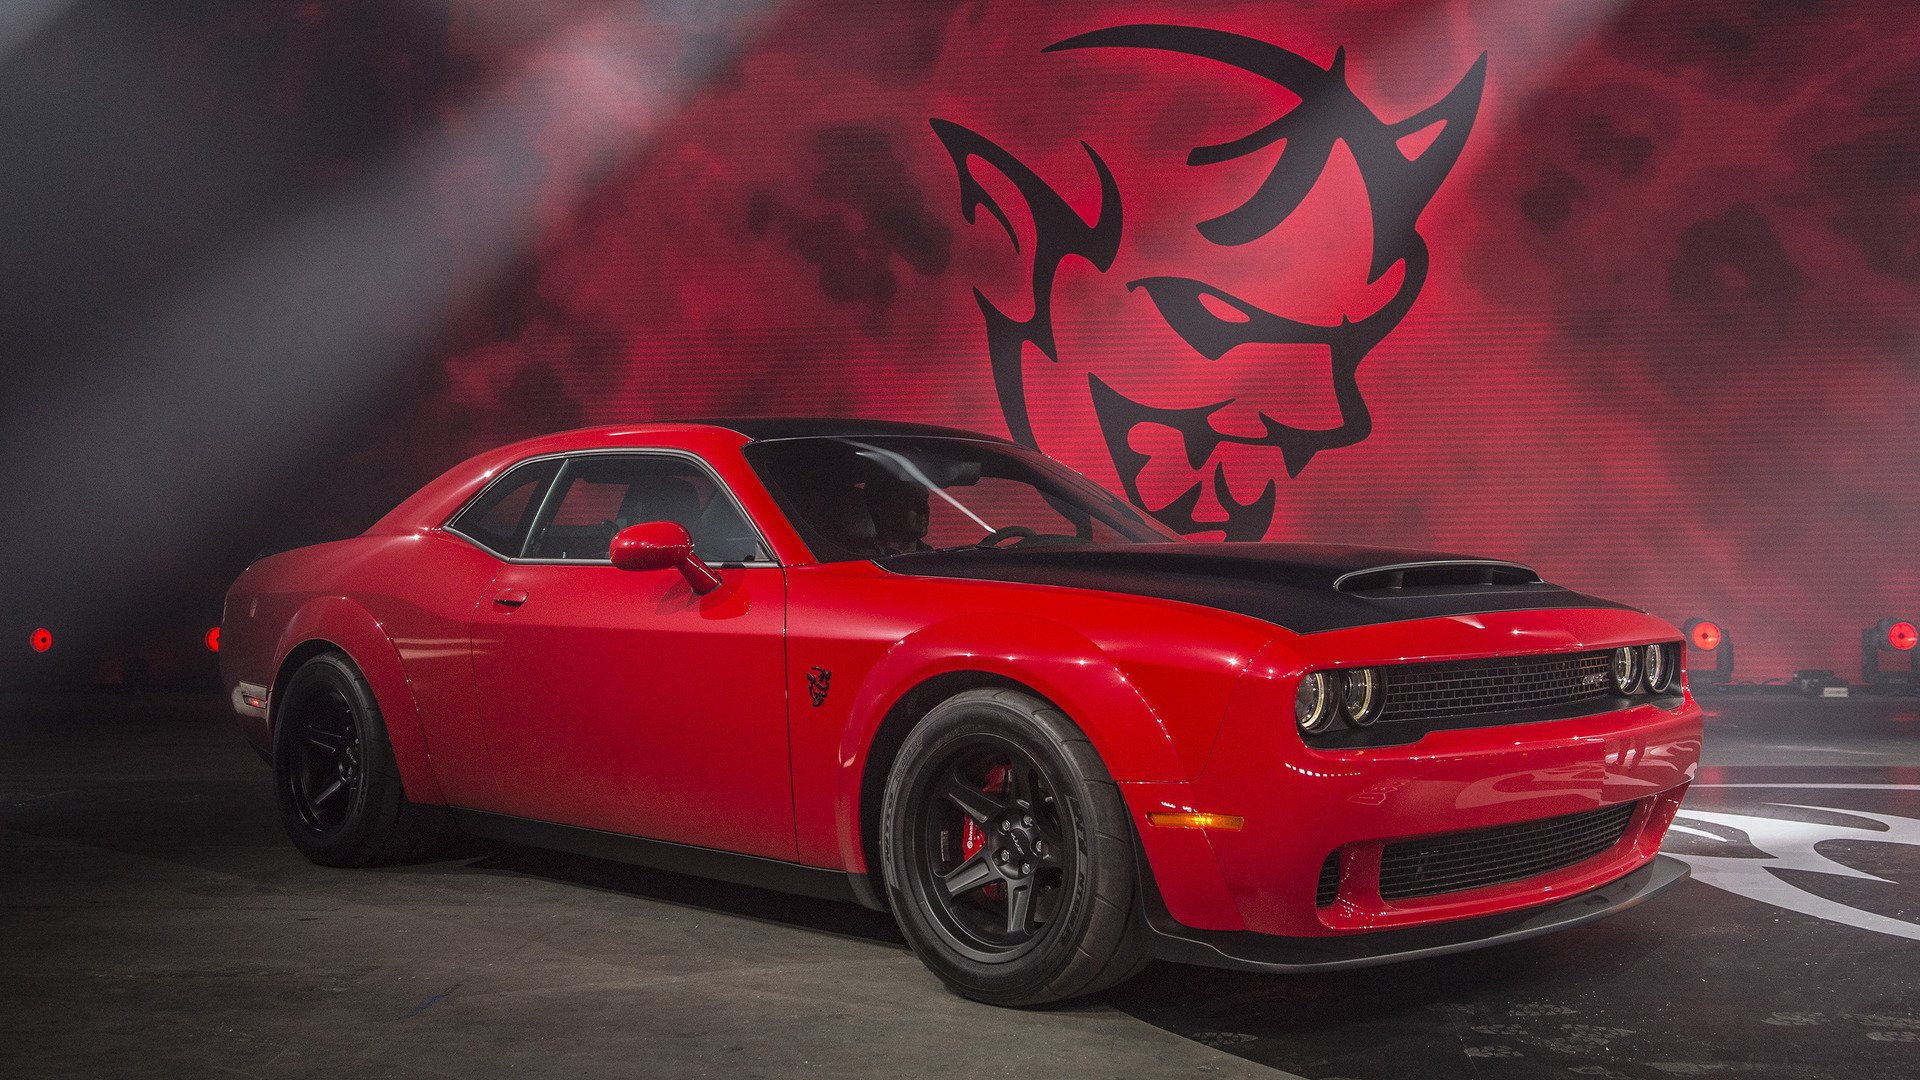 Dodge Demon Wallpaper >> Dodge Challenger SRT Demon Full HD Papel de Parede and Background Image | 1920x1080 | ID:845041